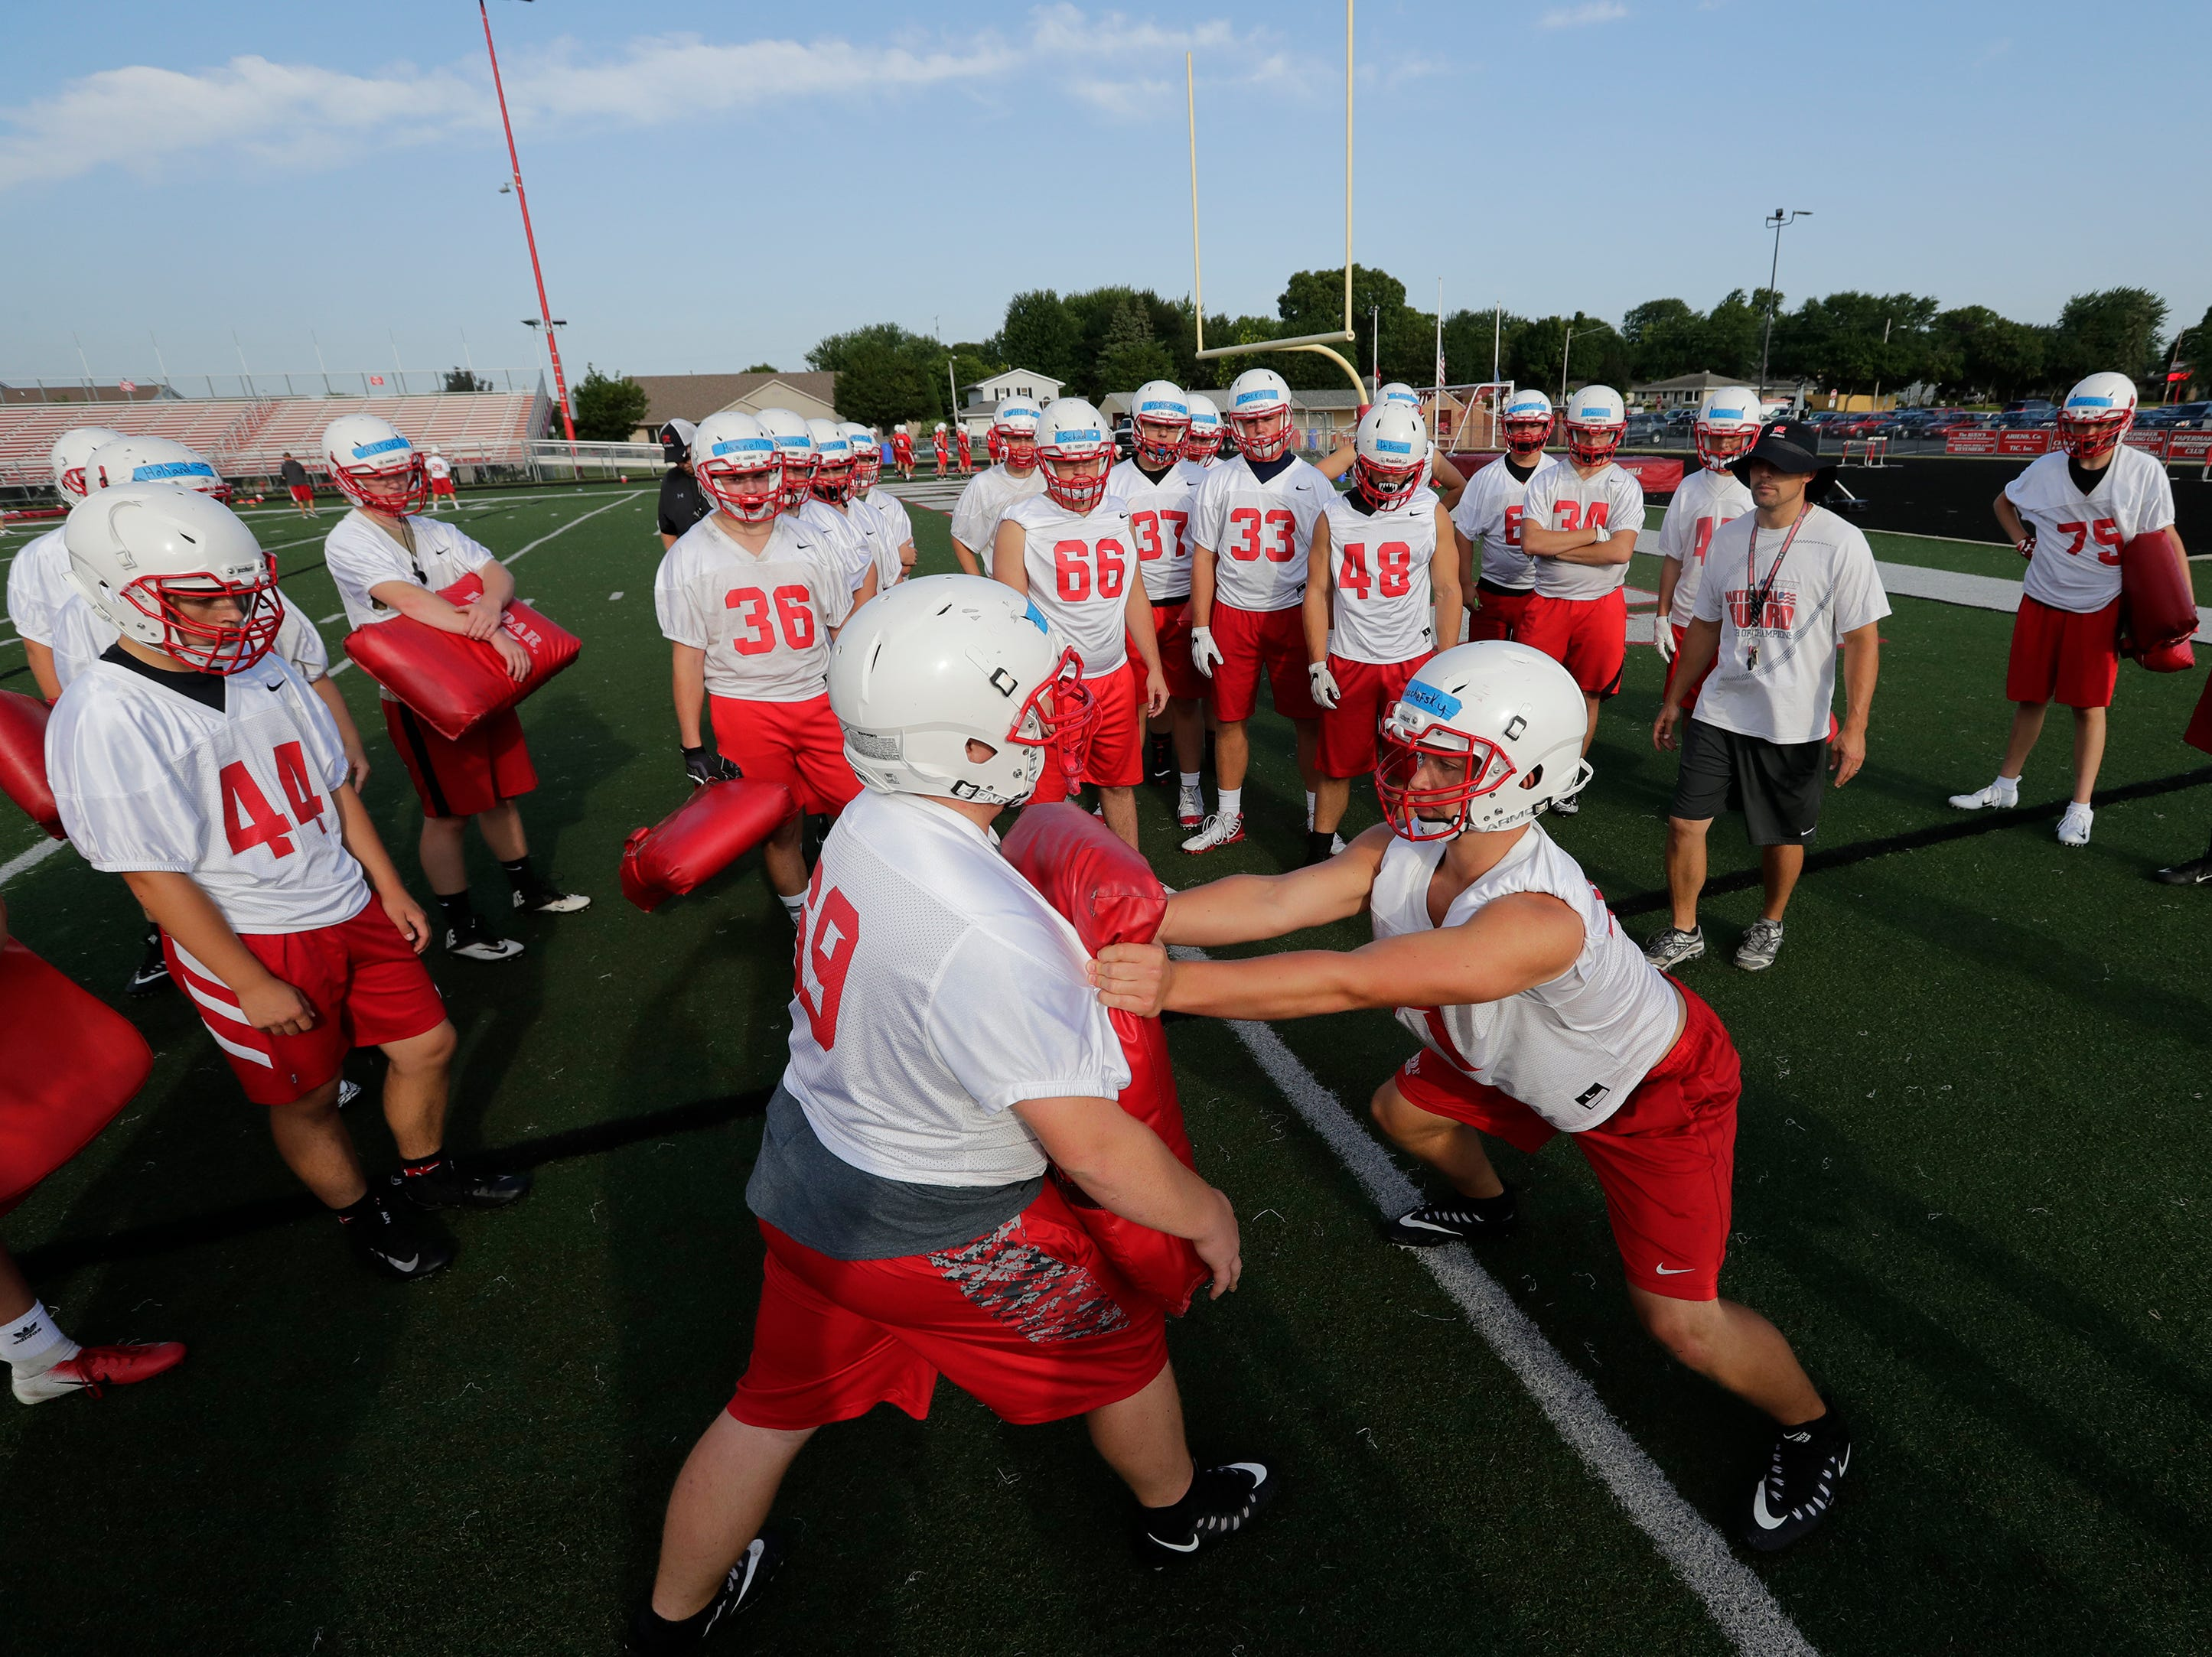 The defense works on a drill during the Kimberly High School football practice Wednesday, August 1, 2018, at Papermaker Stadium in Kimberly, Wis. 